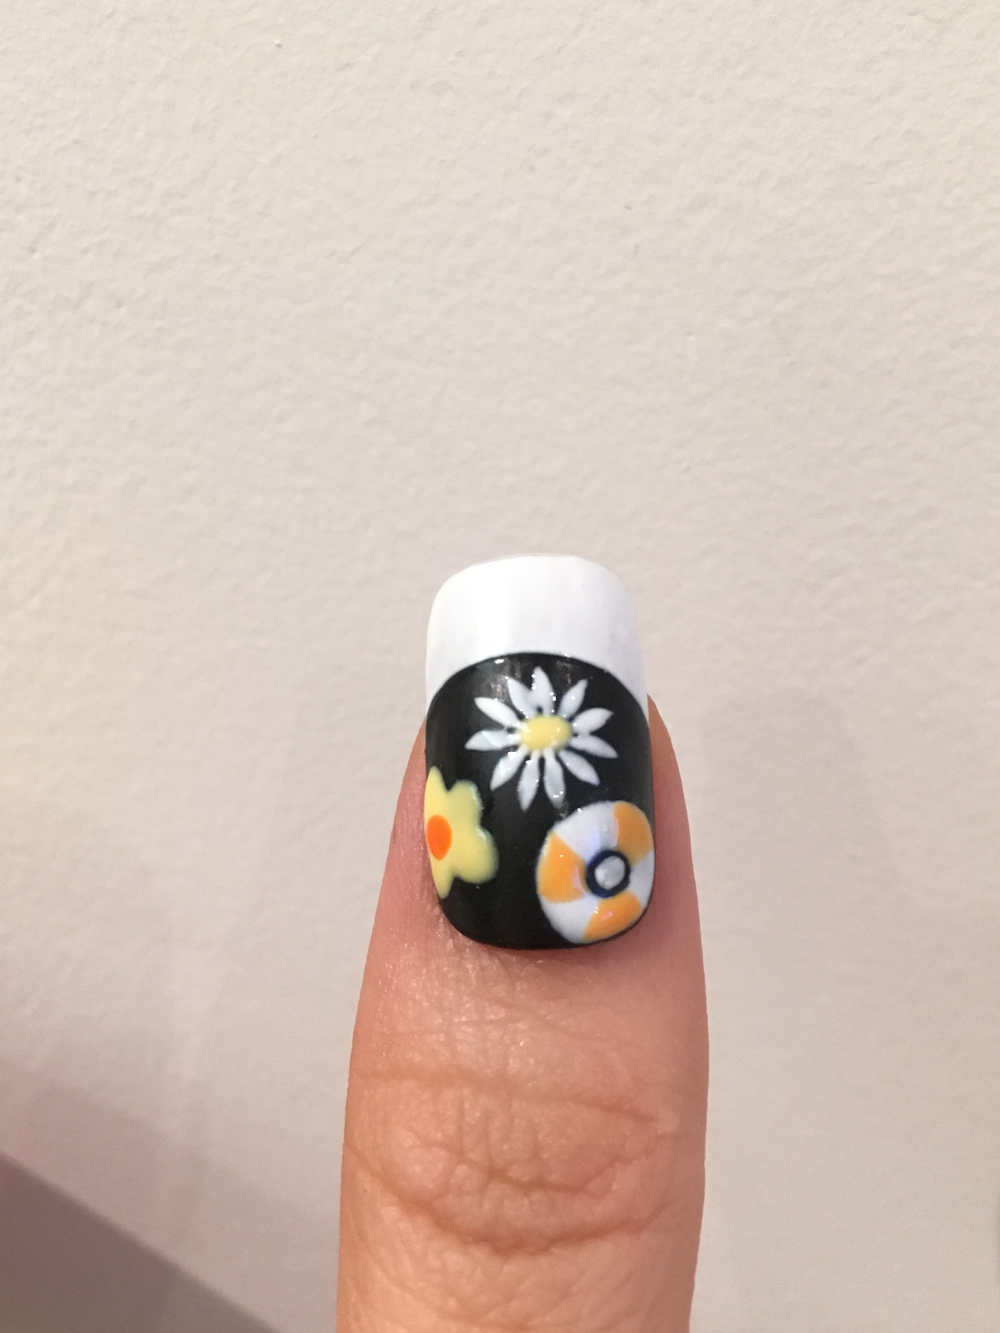 Draw petals of a daisy with white polish around the yellow dot, draw an orange dot on the yellow flower, and draw and orange pattern on the white circle.